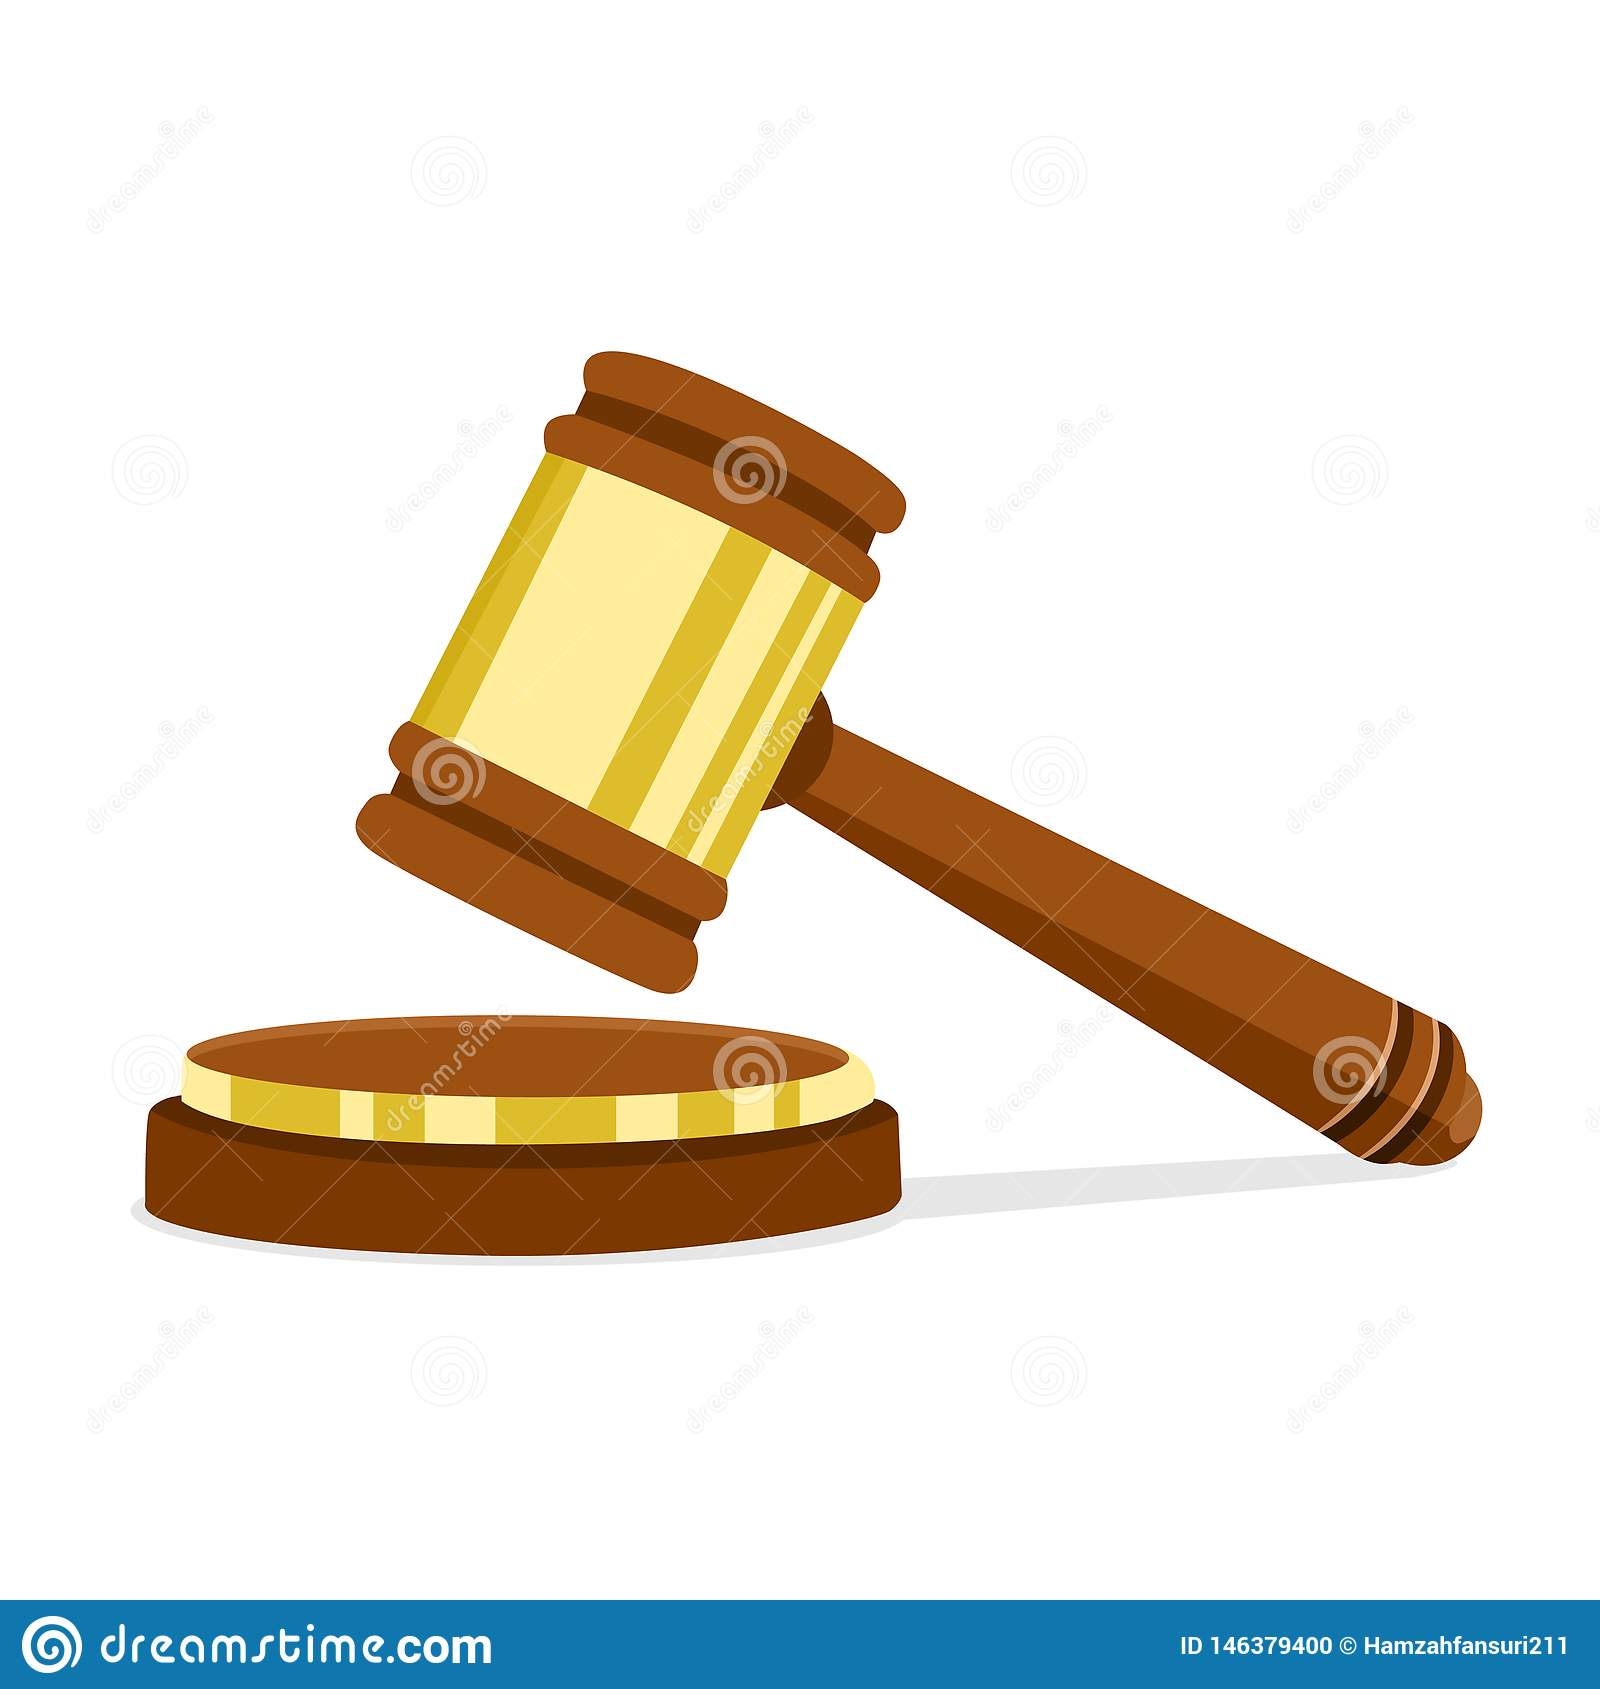 Vector illustration in flat design Wooden judge hammer of the chairman for adjudication of sentences and bills. Legal law and auct